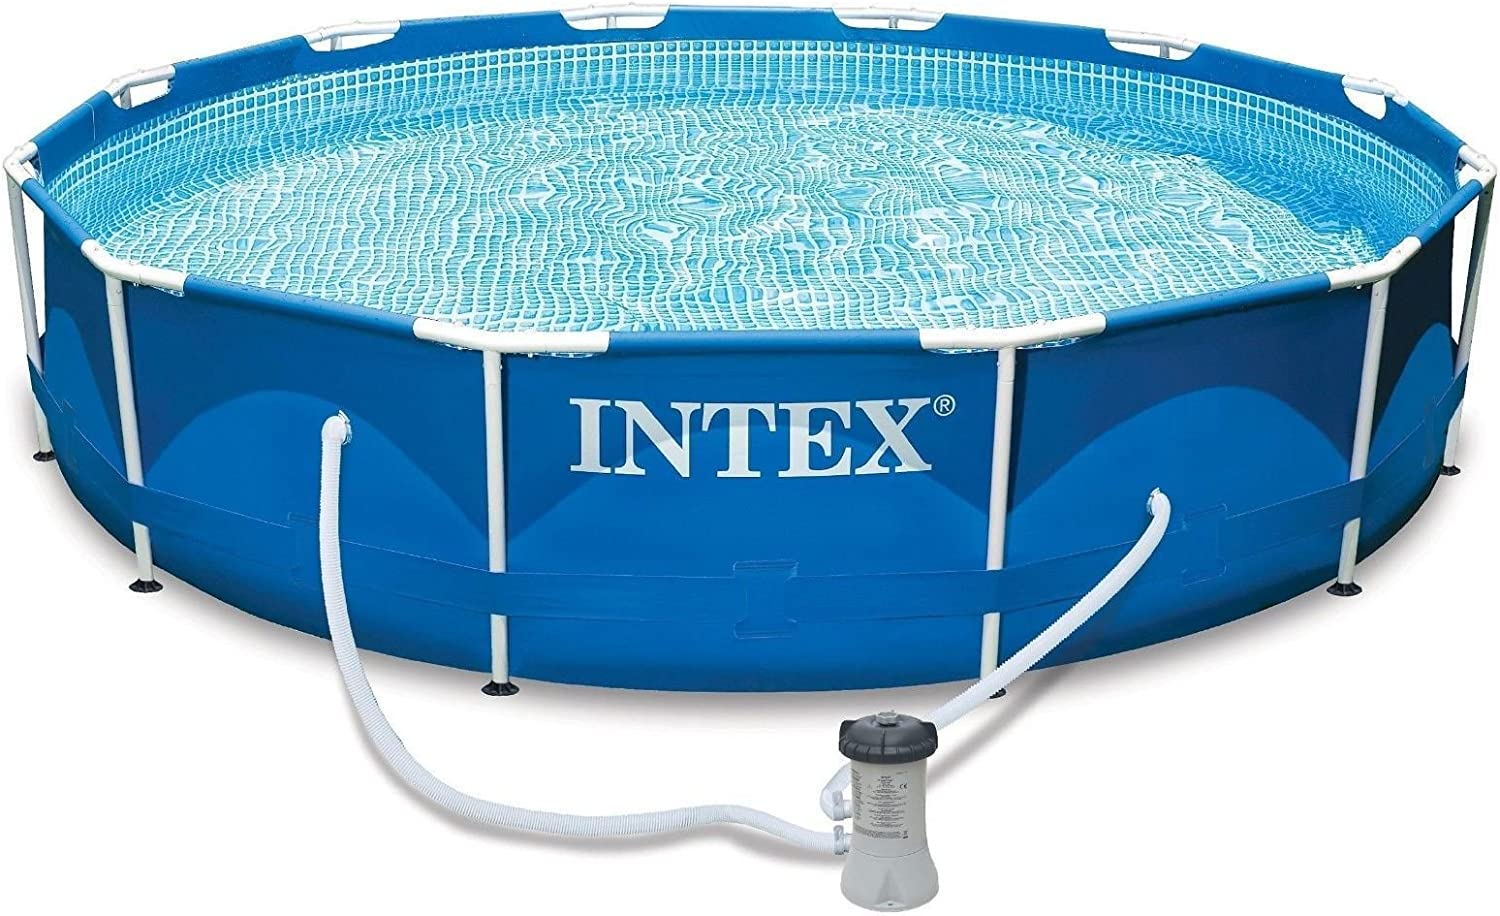 Intexi Intex Family Swimming Pool With Metal Frame 366 X 84 Cm Swimming Pool Set With Filter Pump And Accessories Amazon Co Uk Garden Outdoors